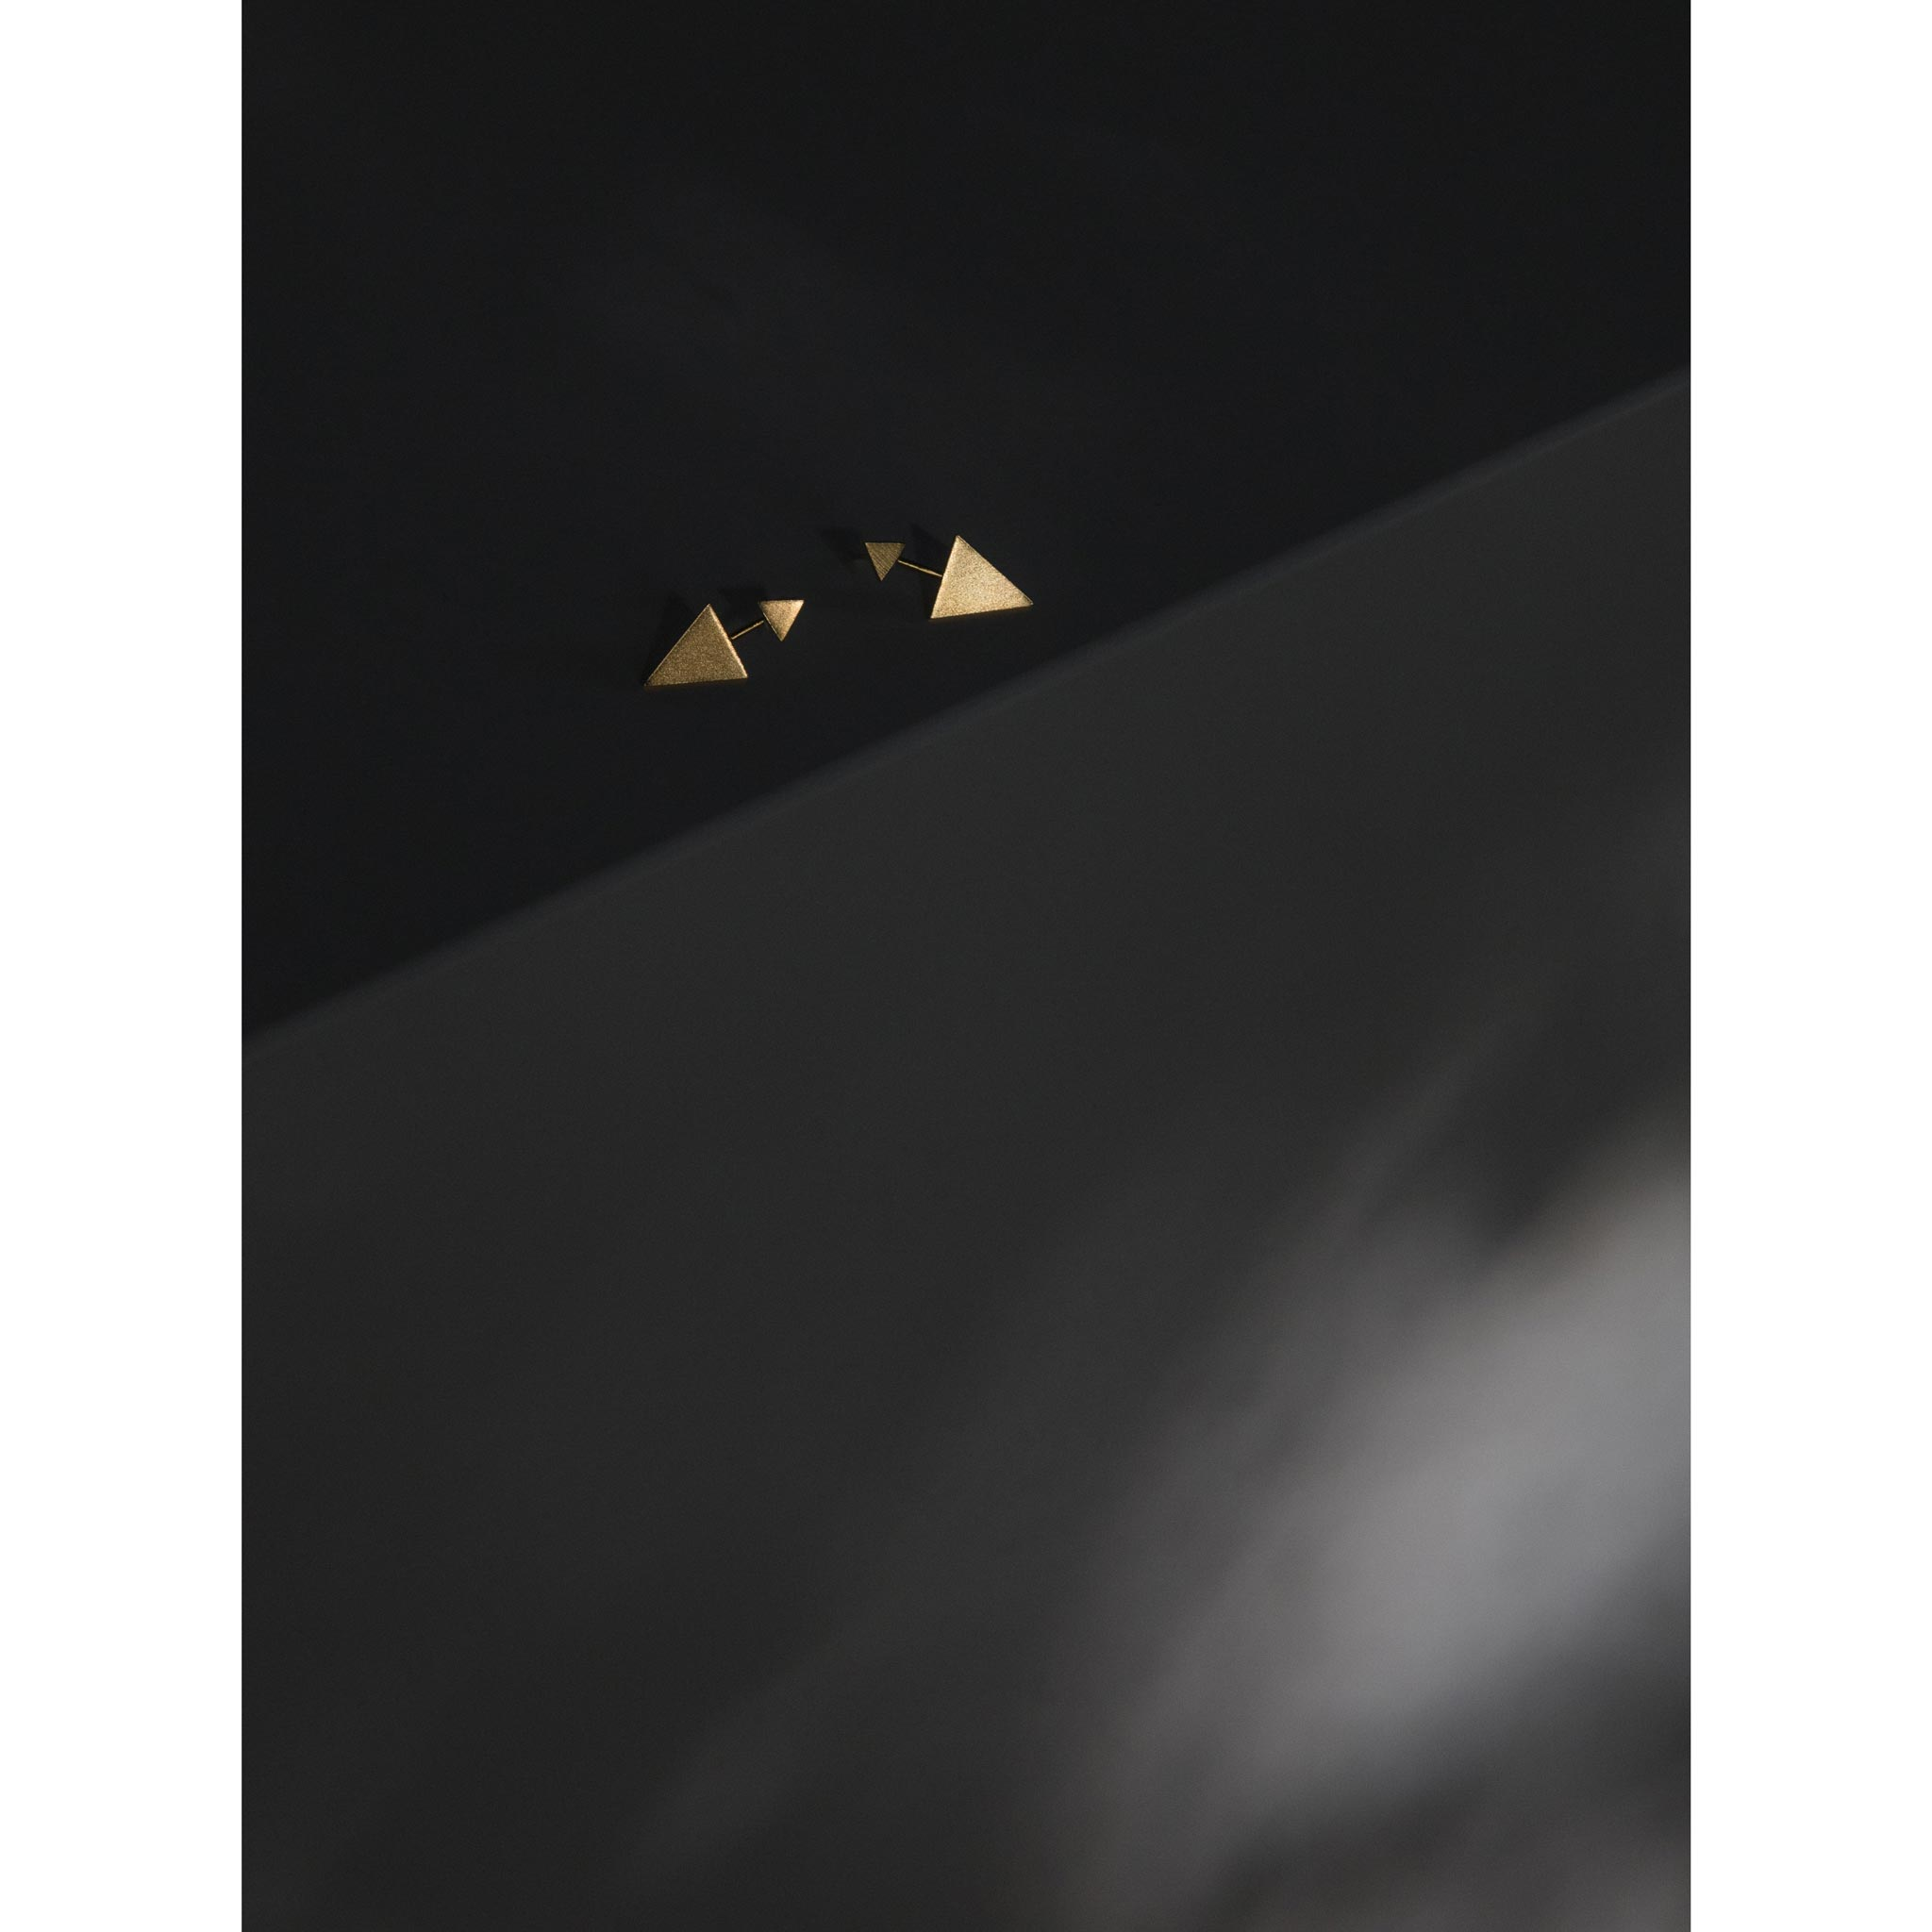 Wanderlust Life Ethically Handmade jewellery made in the UK. Minimalist gold and fine cord jewellery. ear jacket, gold fortis triangle